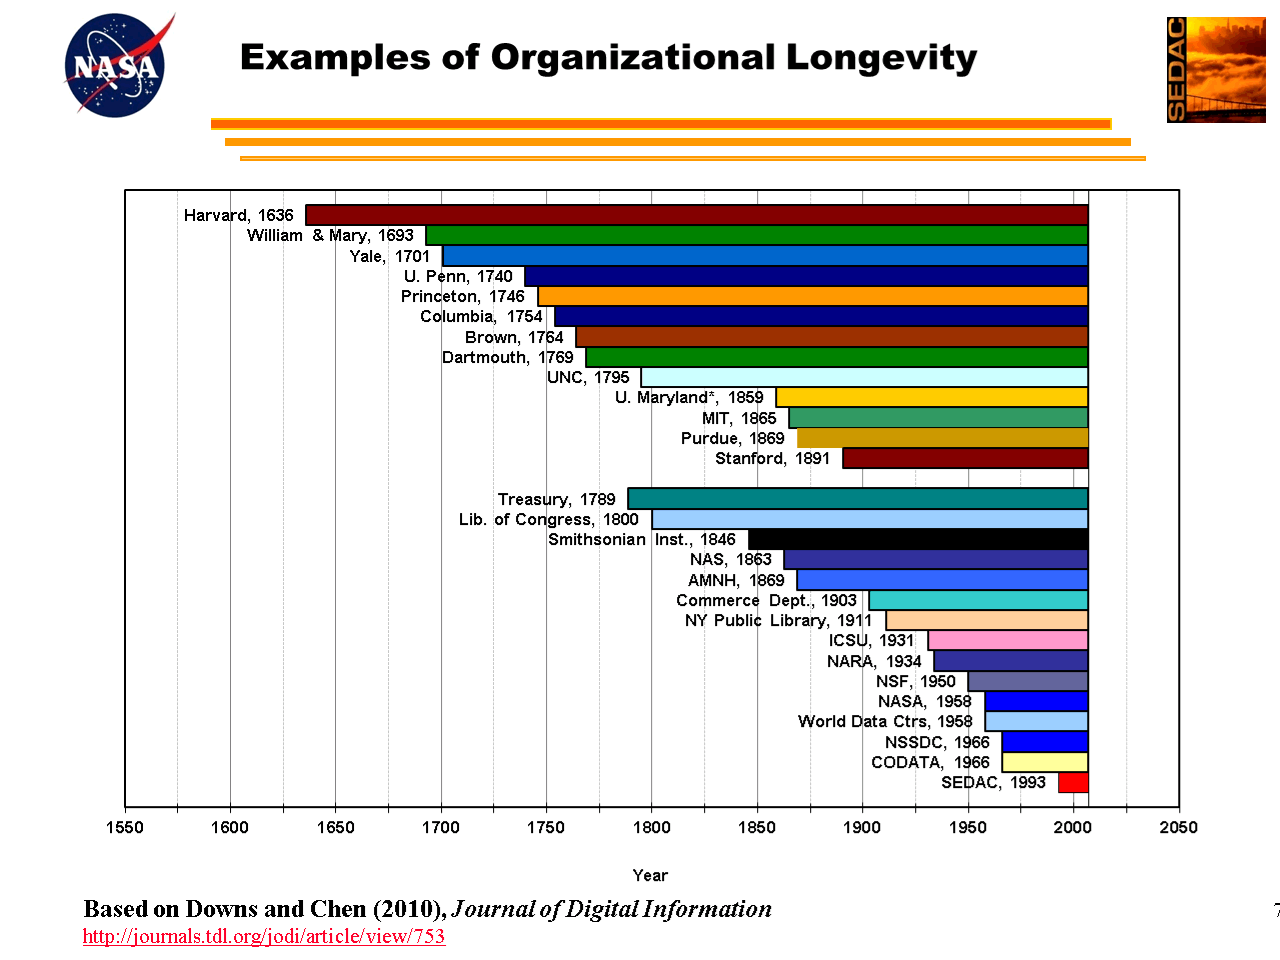 figure showing organizational longevity statistics